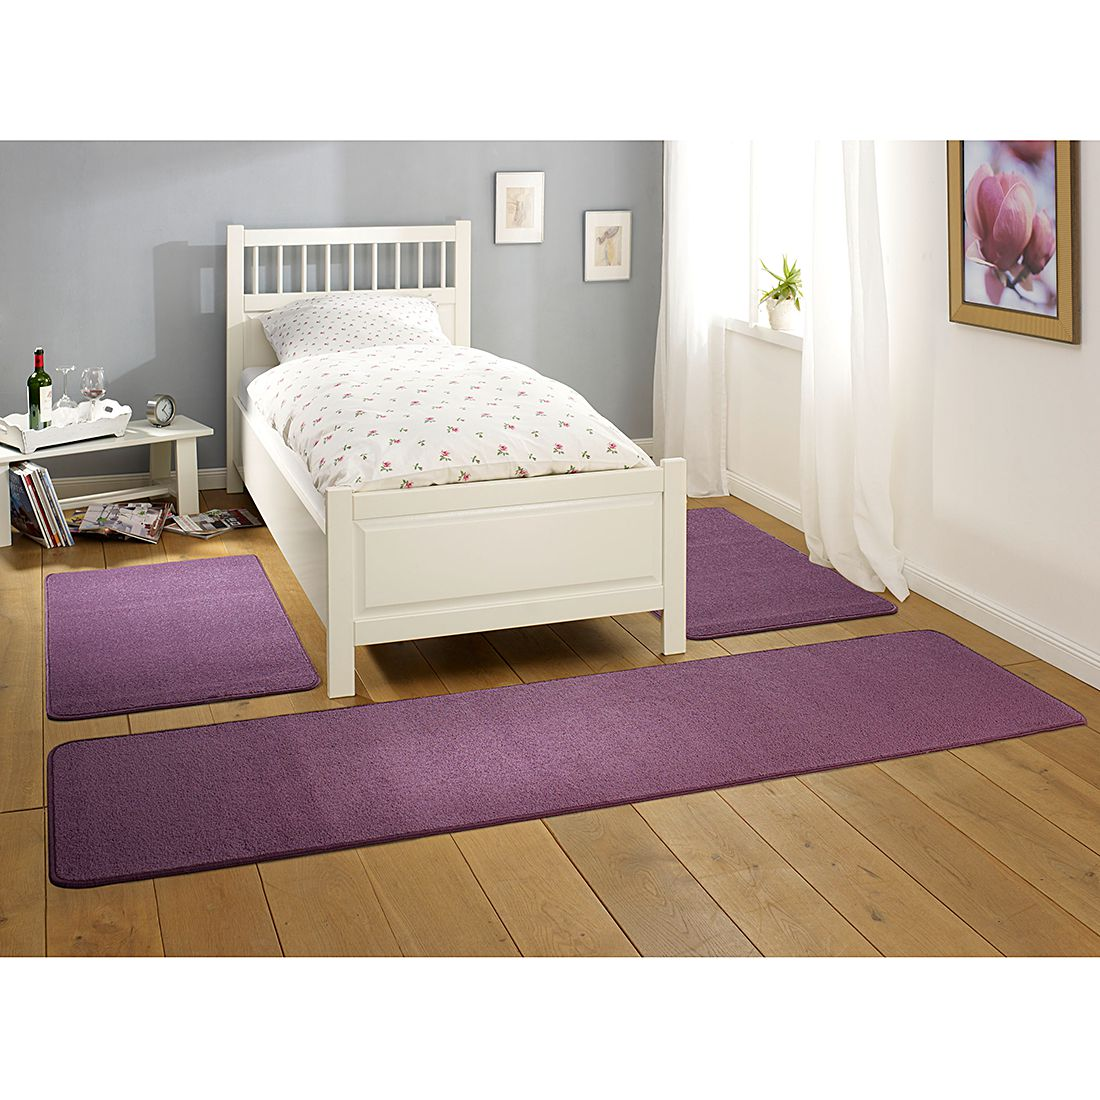 Tapis de lit Nasty - Violet, Hanse Home Collection